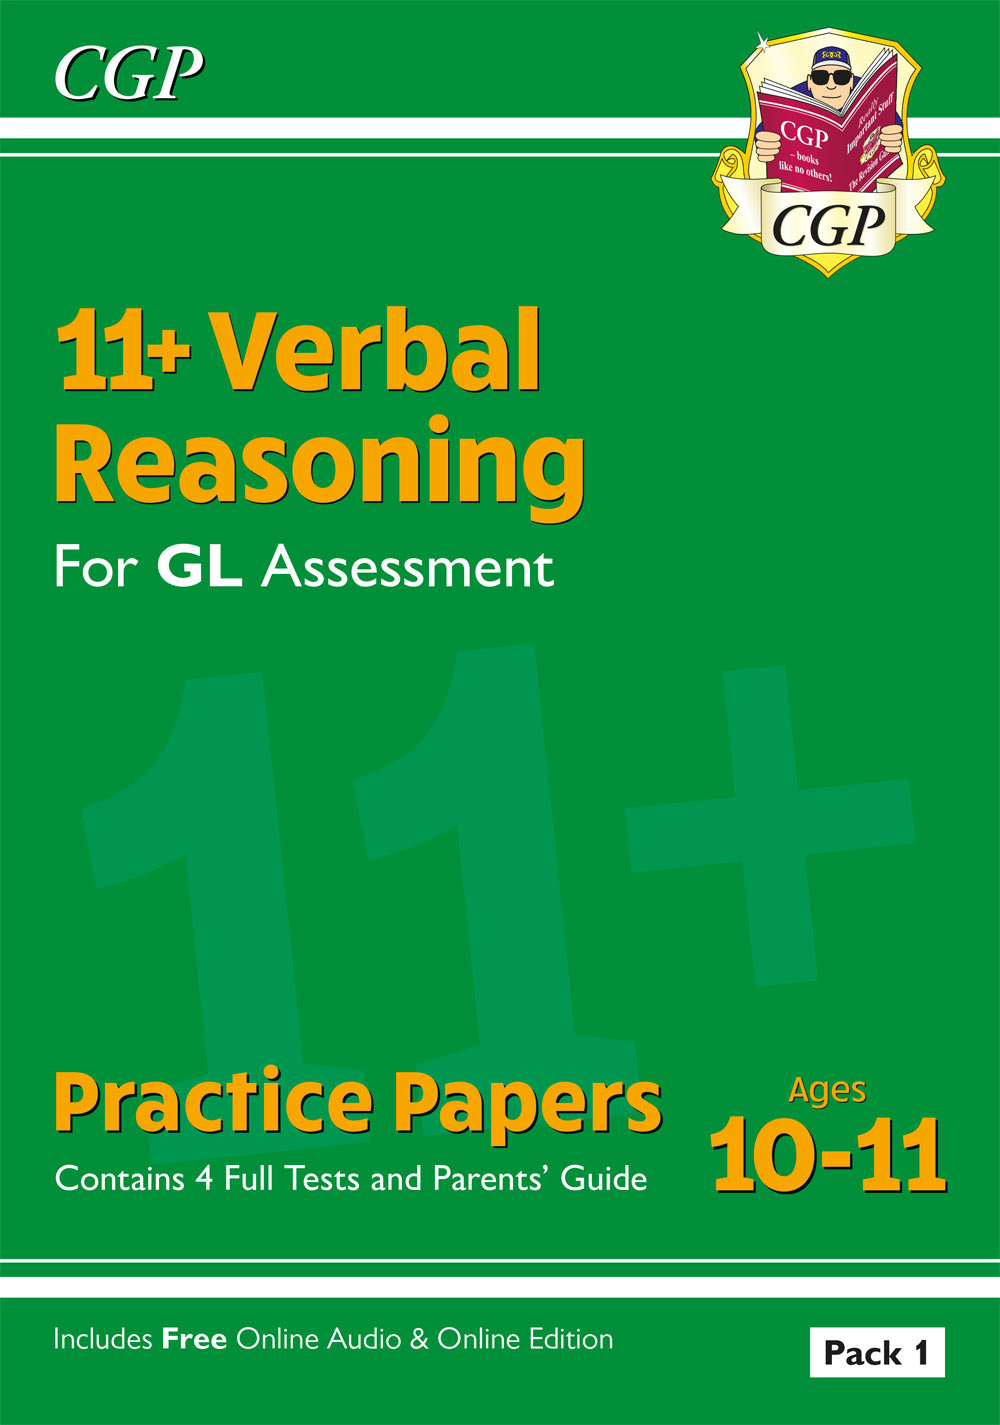 VHTE2 - 11+ GL Verbal Reasoning Practice Papers: Ages 10-11 - Pack 1 (with Parents' Guide & Online E